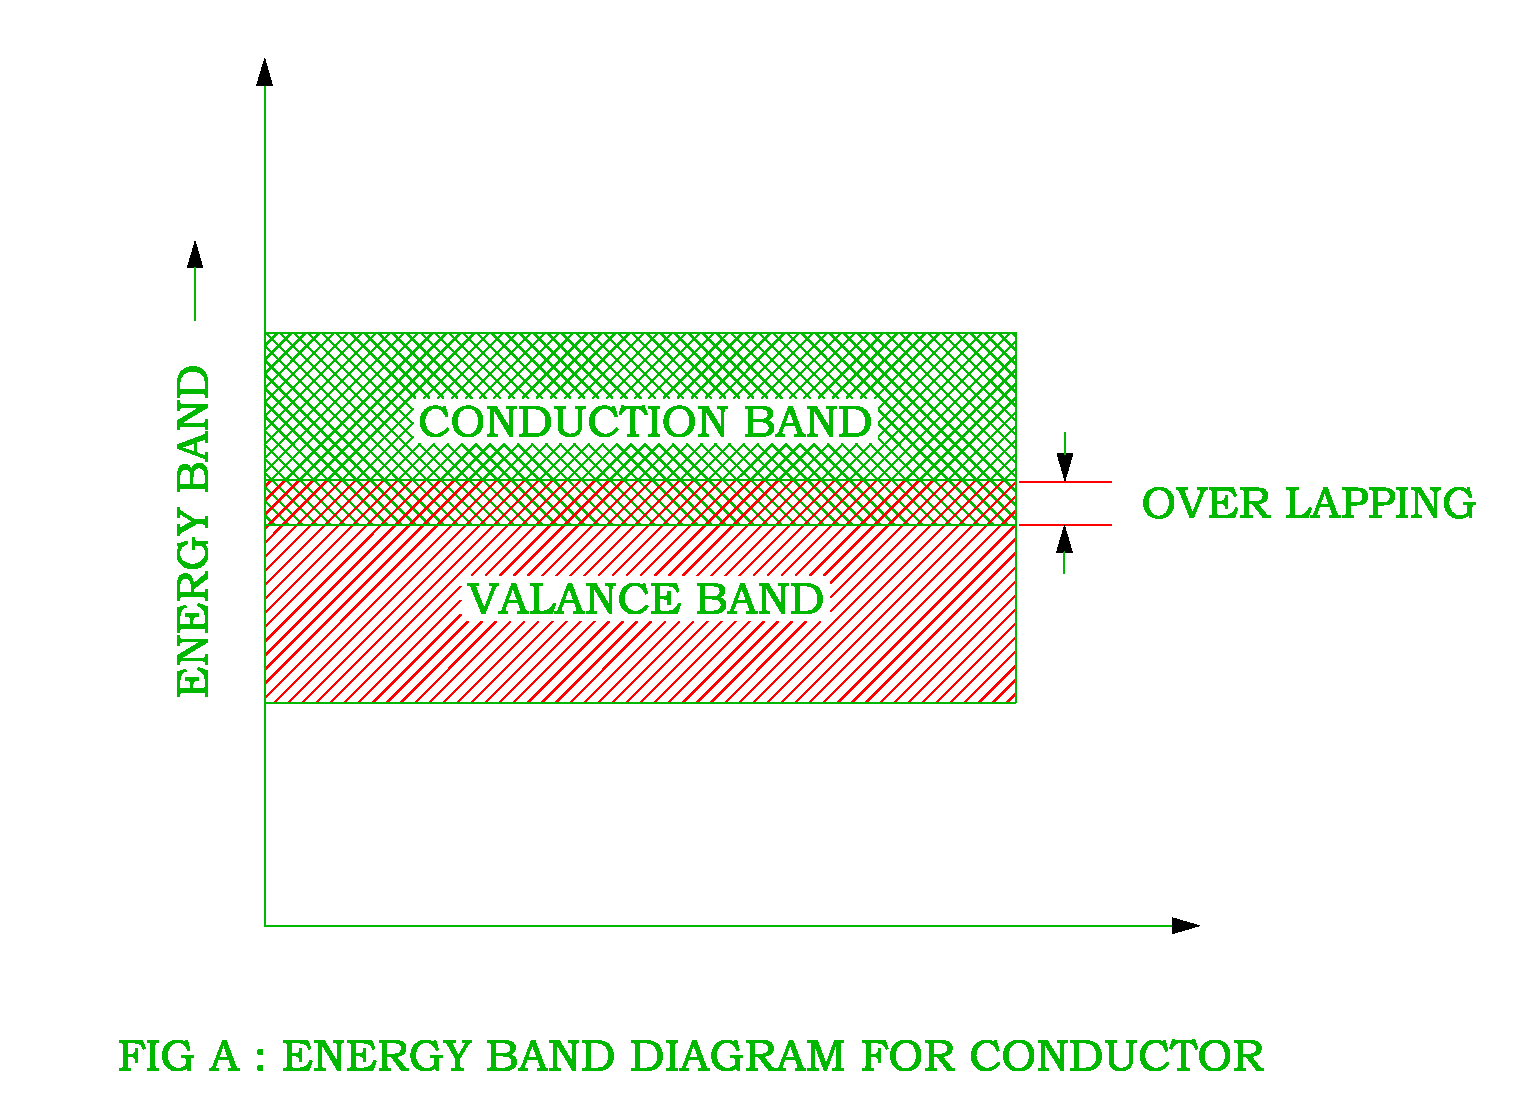 Energy Band Diagram Of Insulator The Titanic Parts Diagaram Conductor Semiconductor And